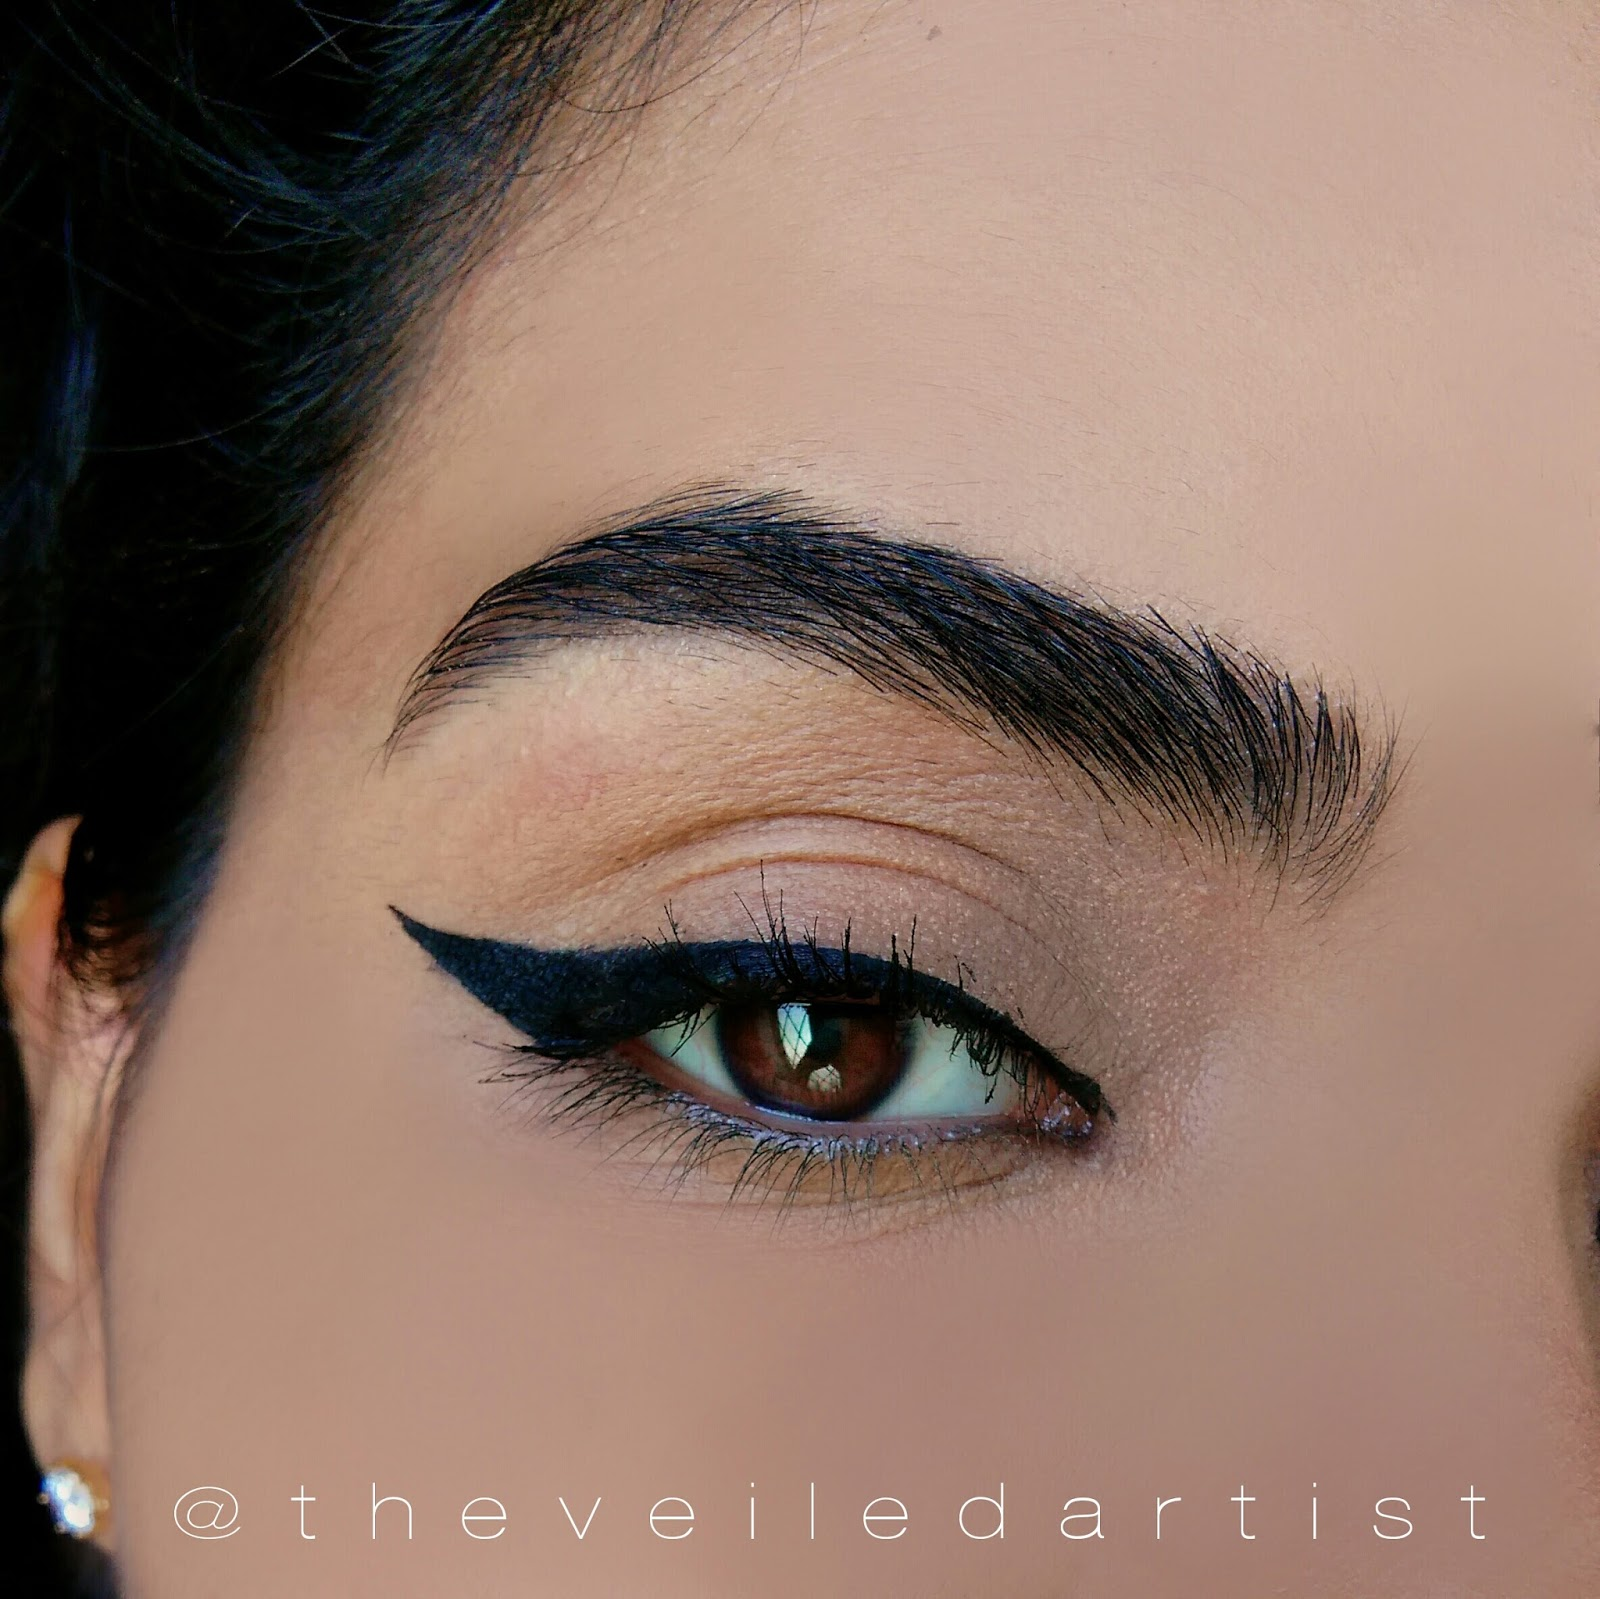 http://www.theveiledartist.com/2017/01/easy-winged-liner-tutorial-using-tape.html